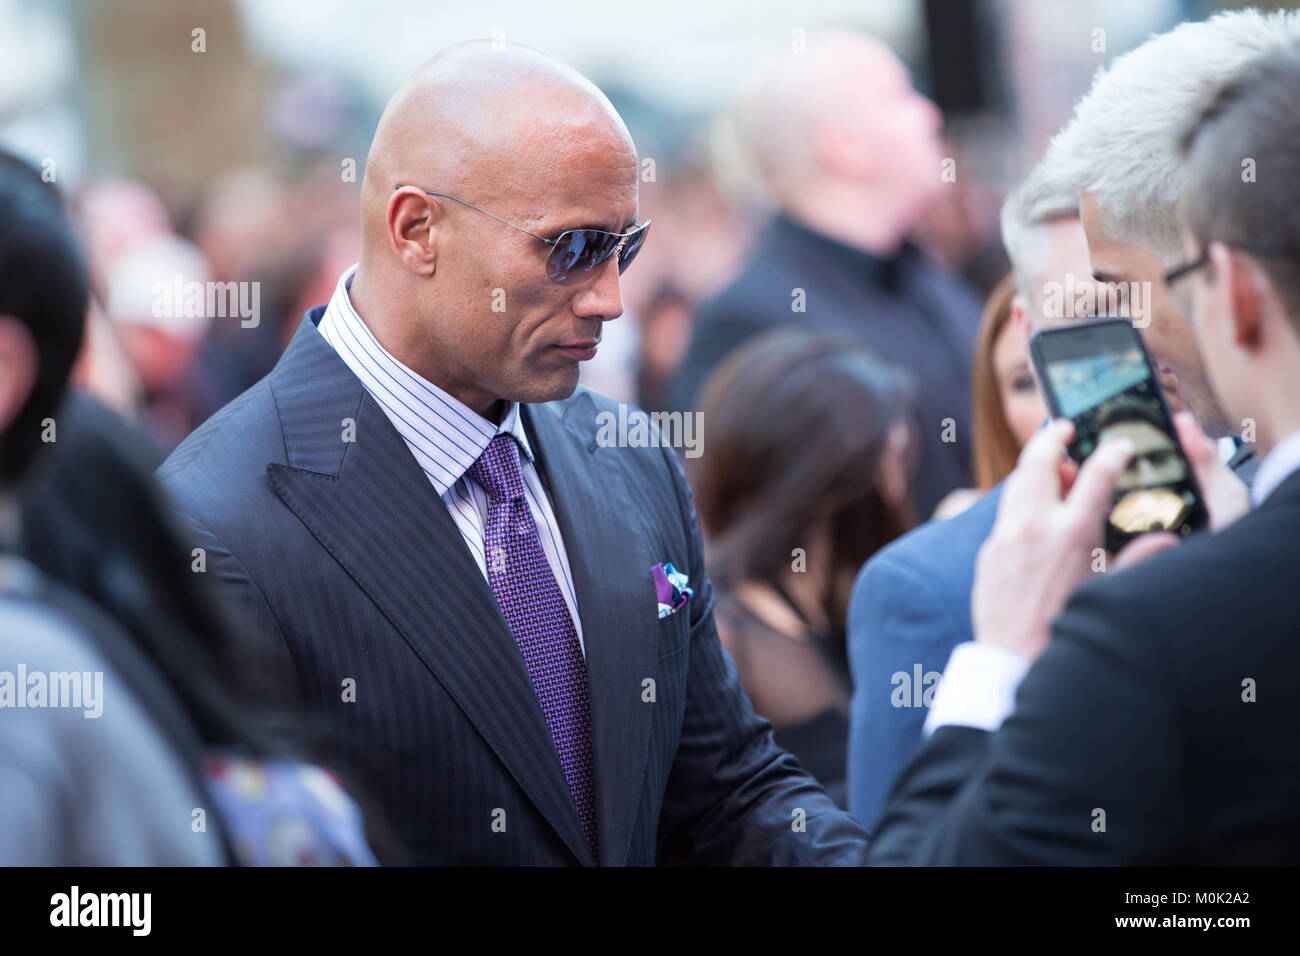 London, UK, 21st May 2015, Dwayne Johnson,World Premiere of 'San Andreas' at the Odeon Leicester Square - Stock Image